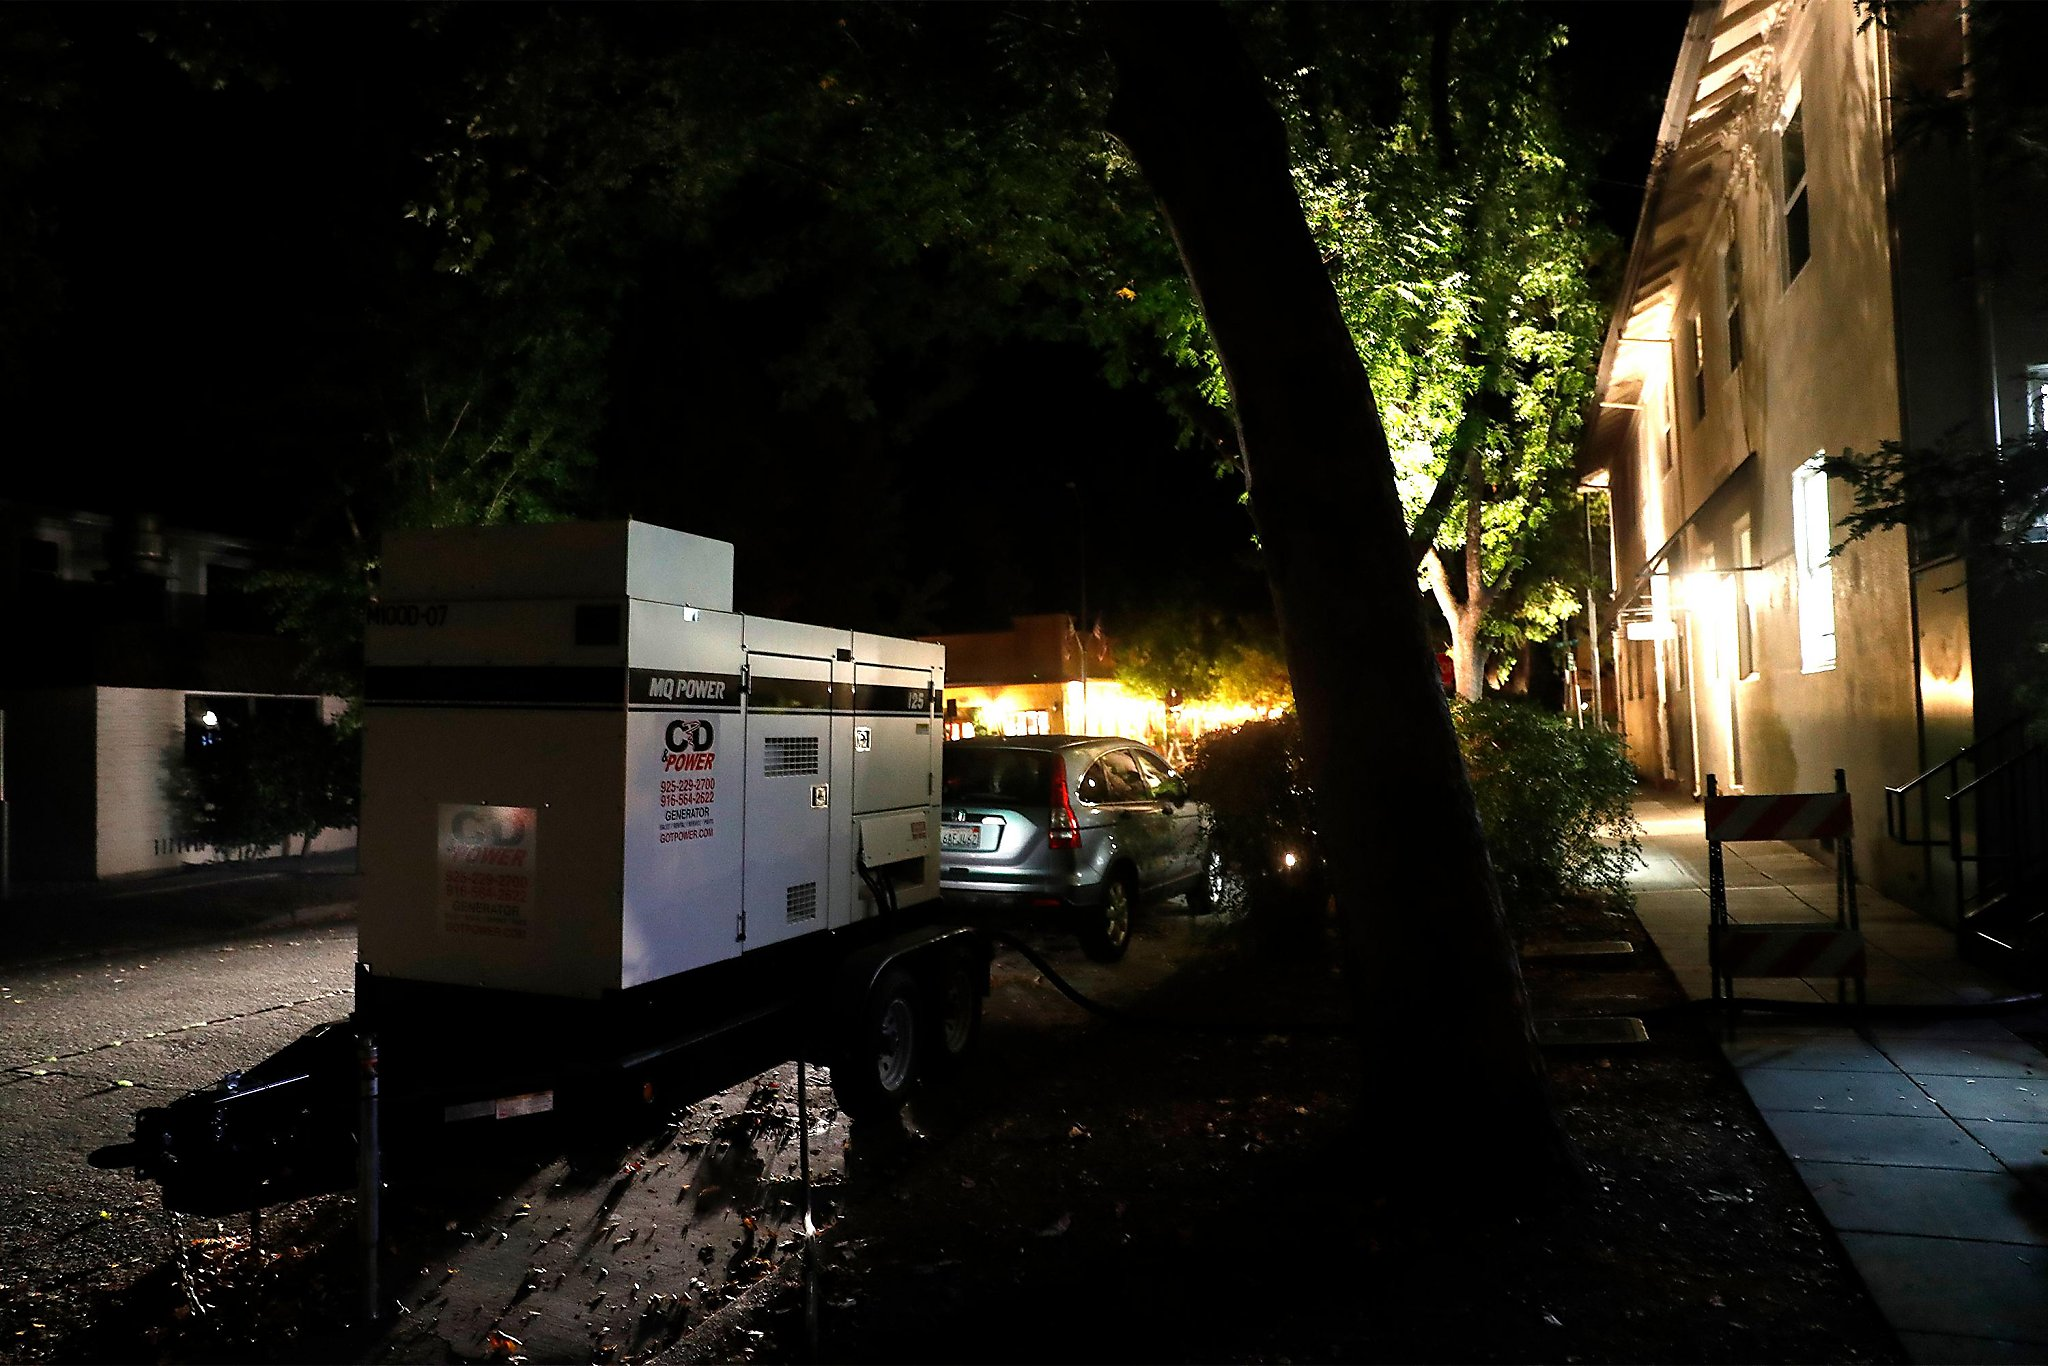 PG&E warns of possible power shut-offs in 15 counties Monday